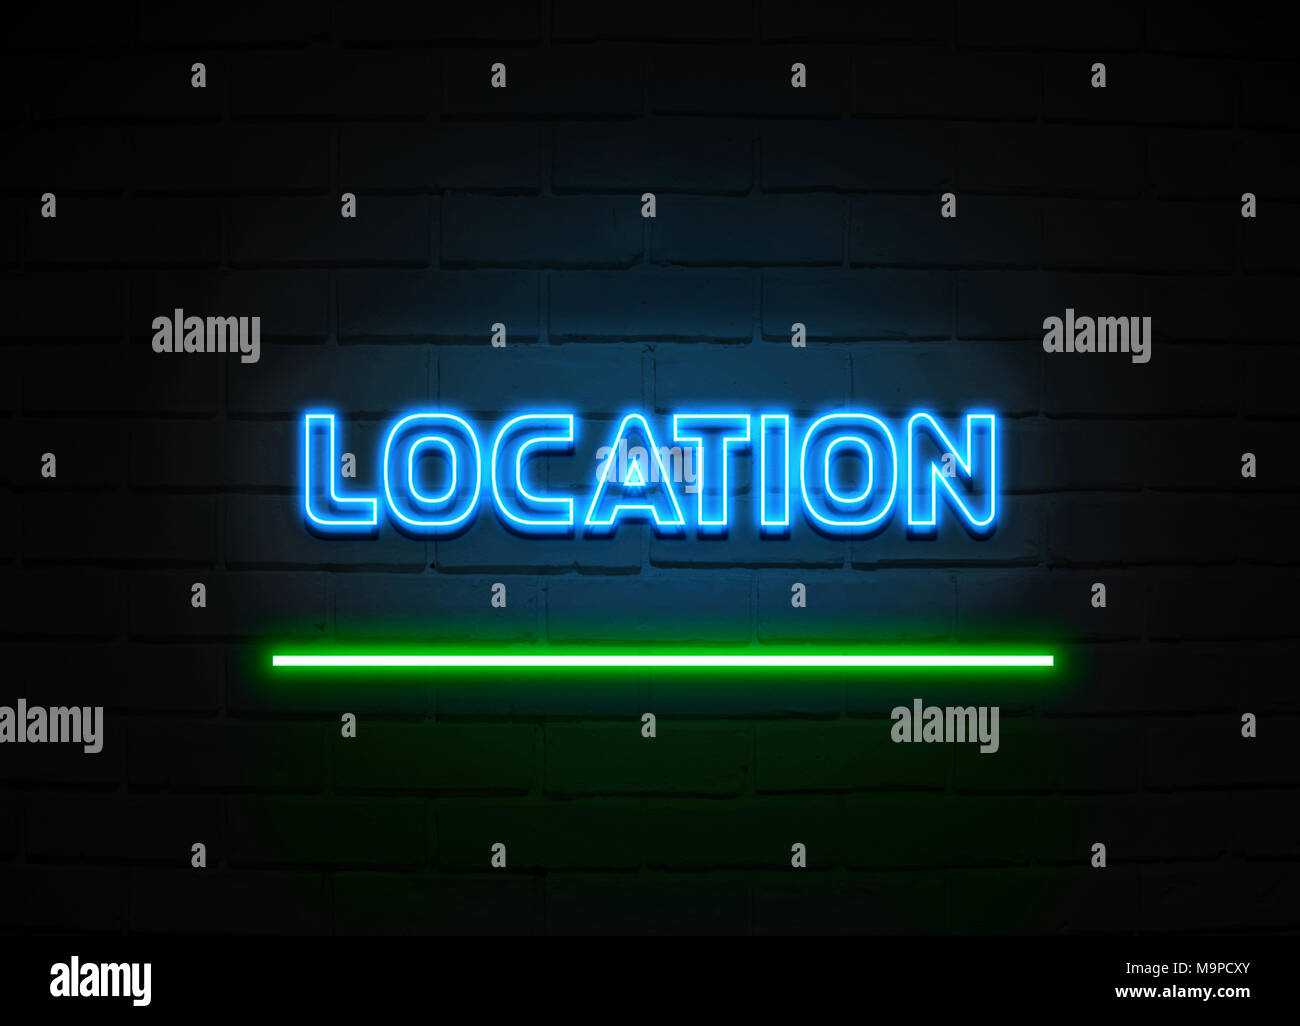 Location neon sign - Glowing Neon Sign on brickwall wall - 3D rendered royalty free stock illustration. - Stock Image